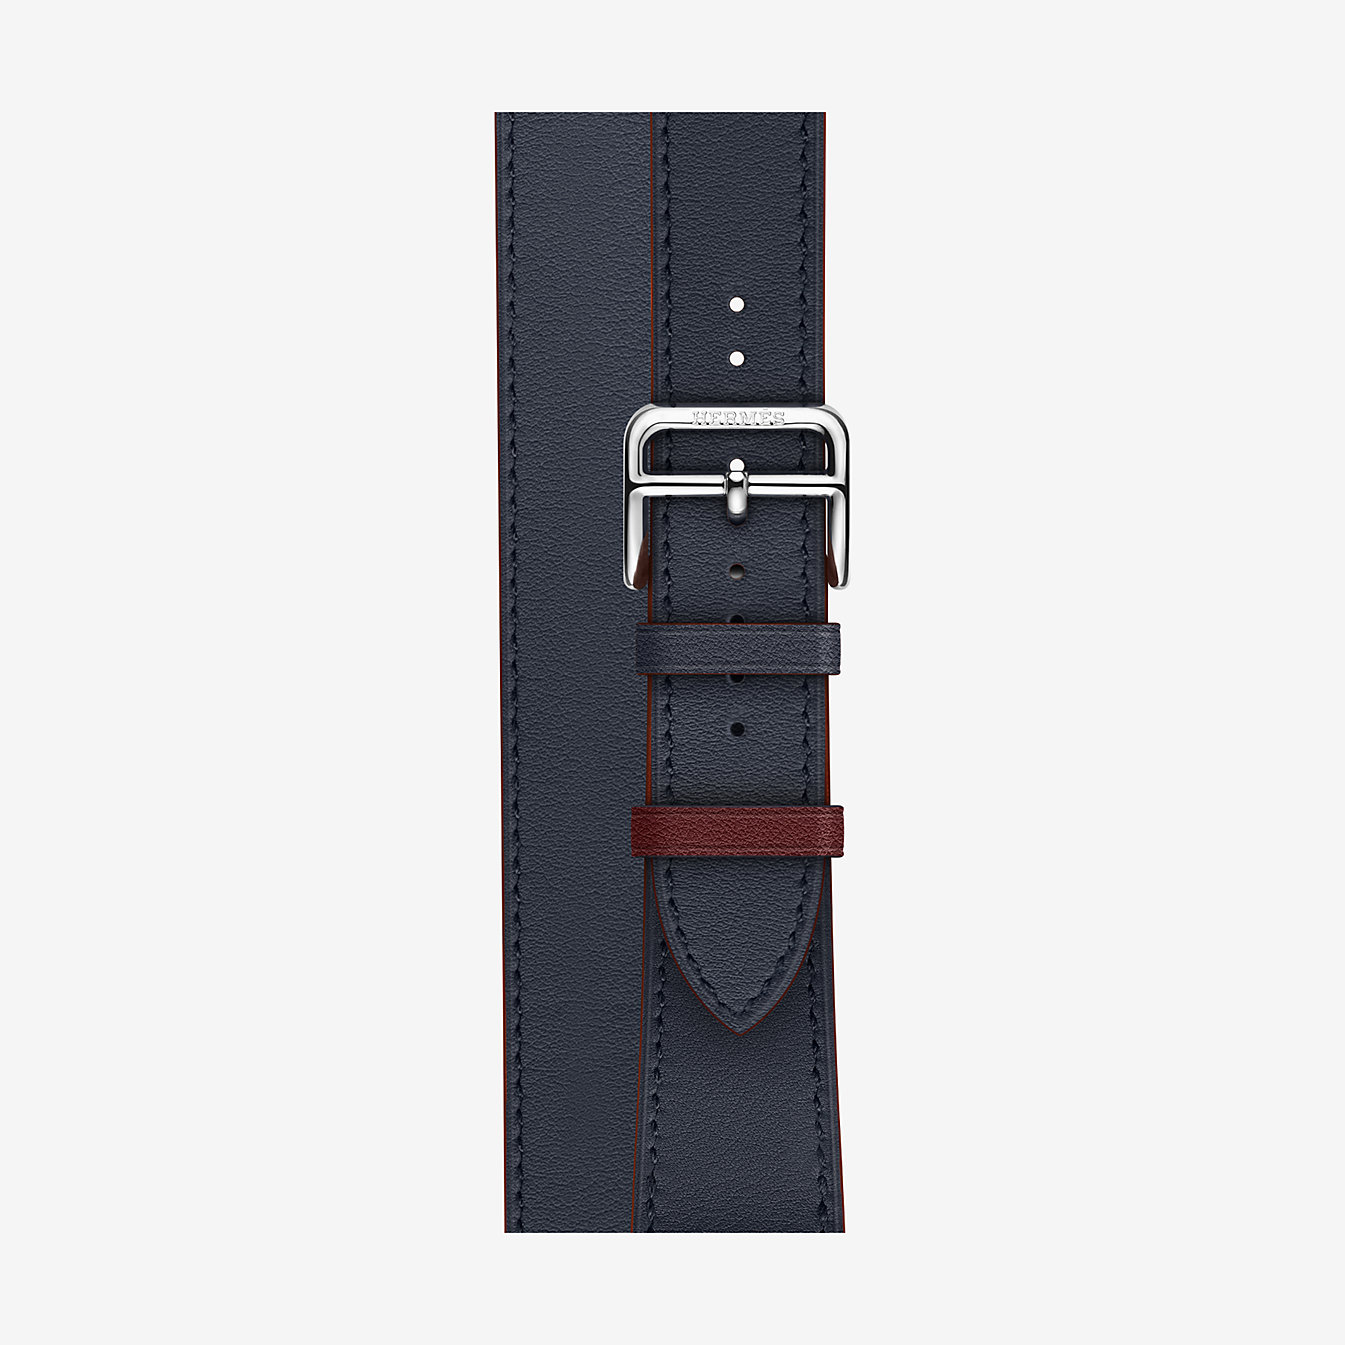 apple-watch-hermes-strap-double-tour-38-mm--074190CJ76-front-1-300-0-1345-1345.jpg